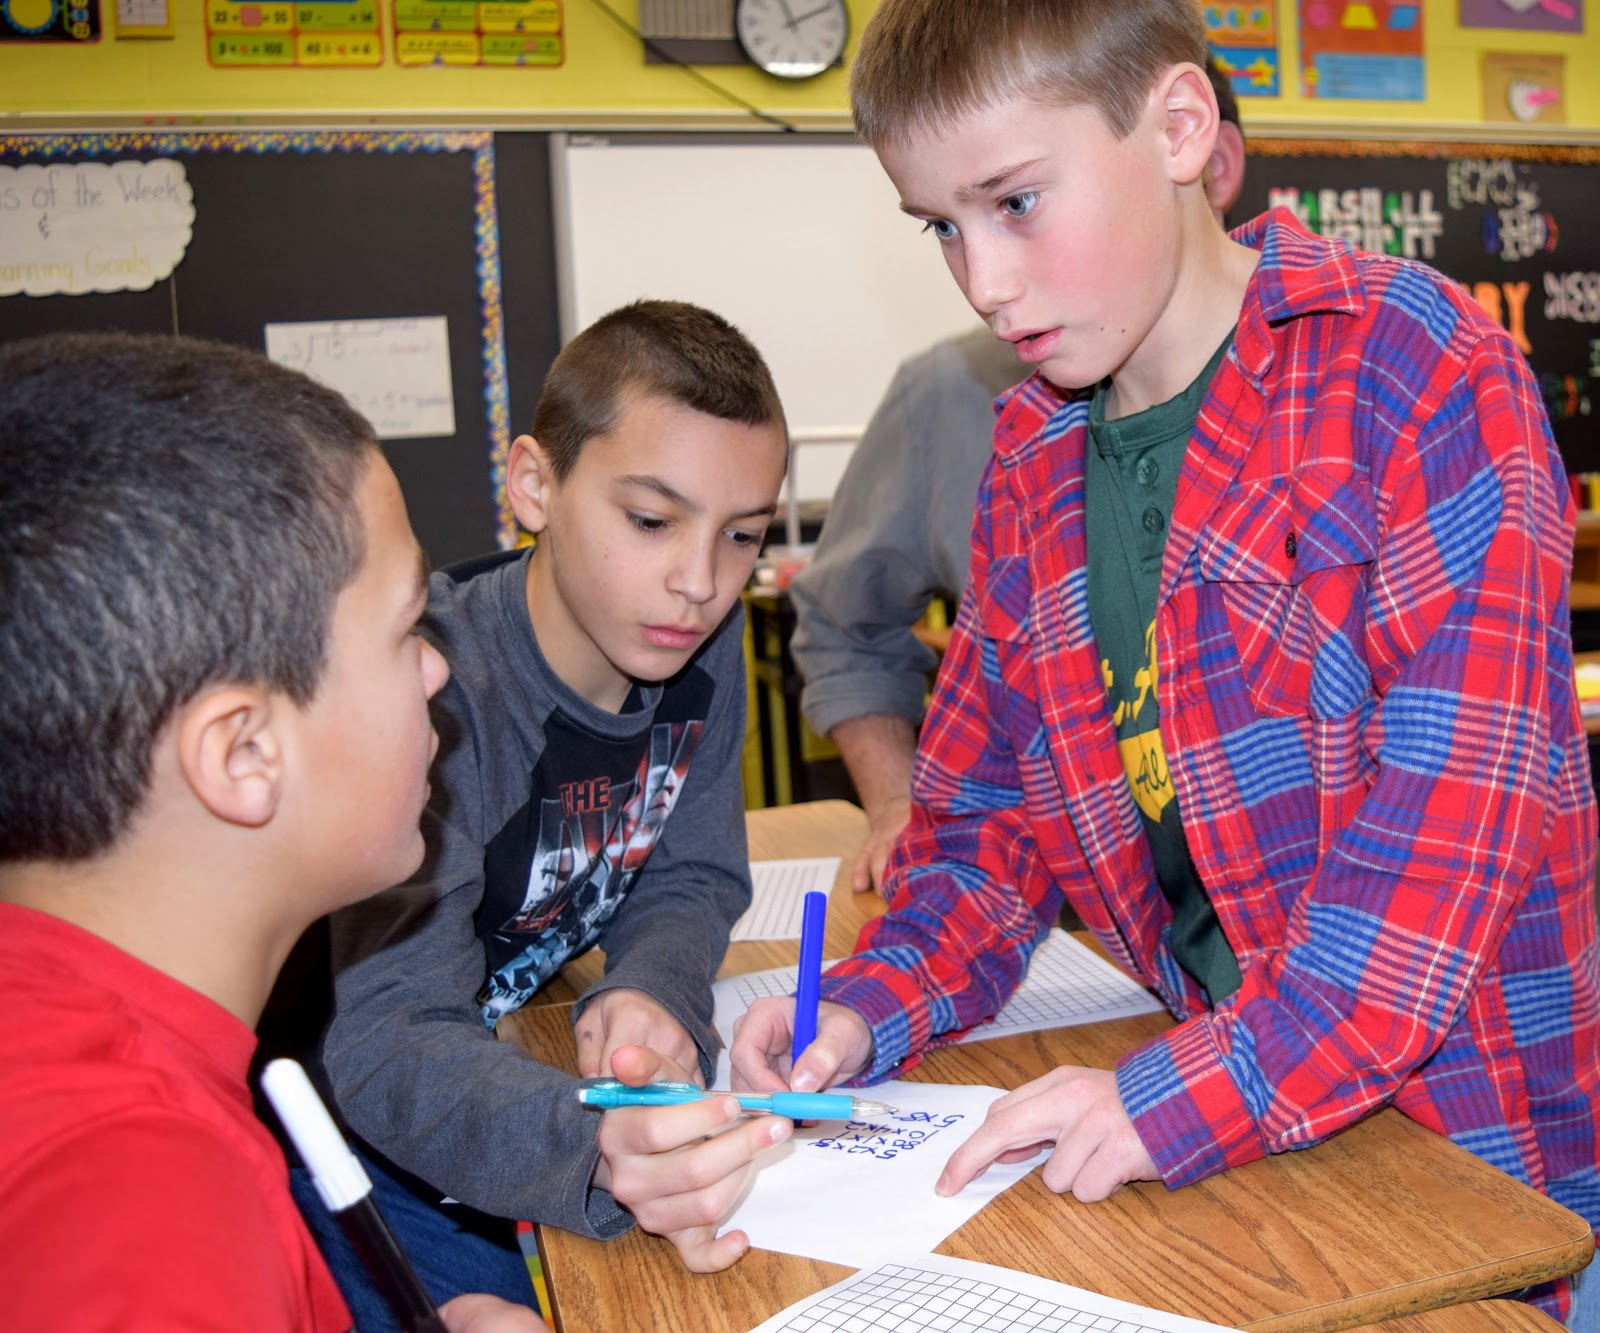 math projects for 6th grade These 6th grade math worksheets include word problems, timed math worksheets, multiplication worksheets, long division worksheets, and plenty of extra math practice for sixth graders.